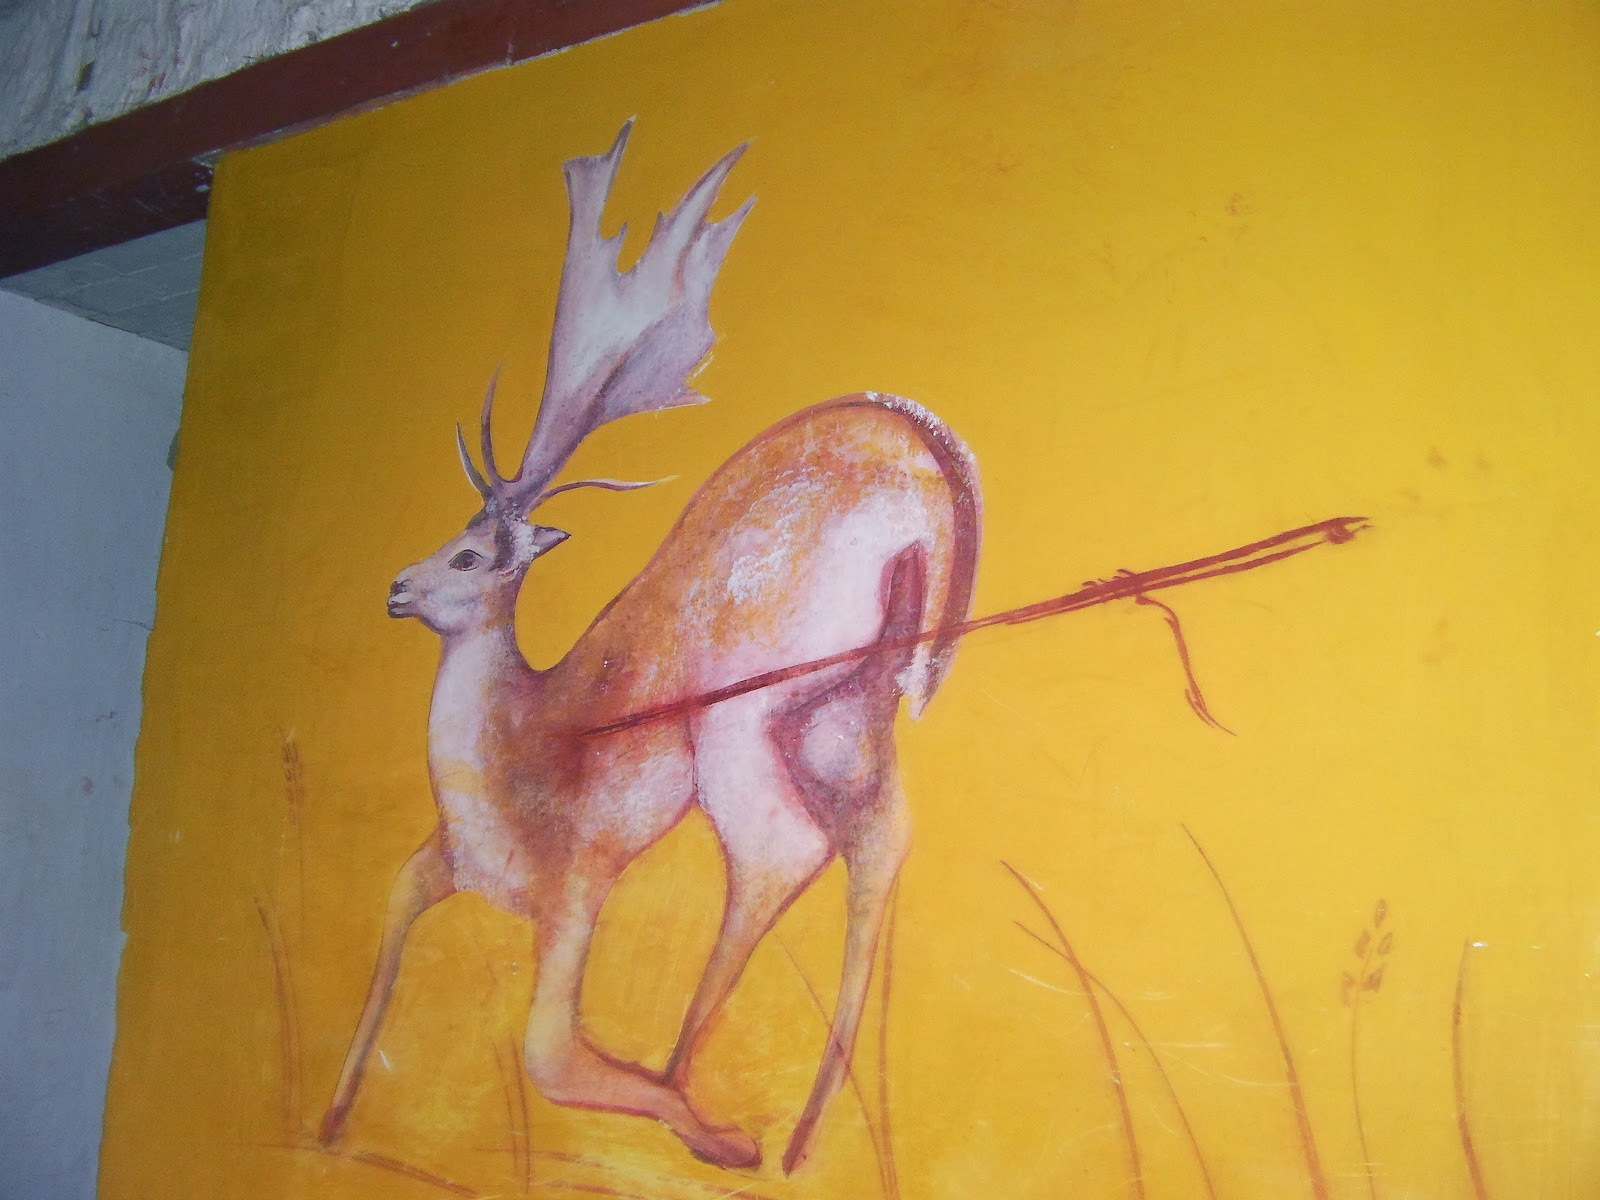 deer stuck with spear cave painting